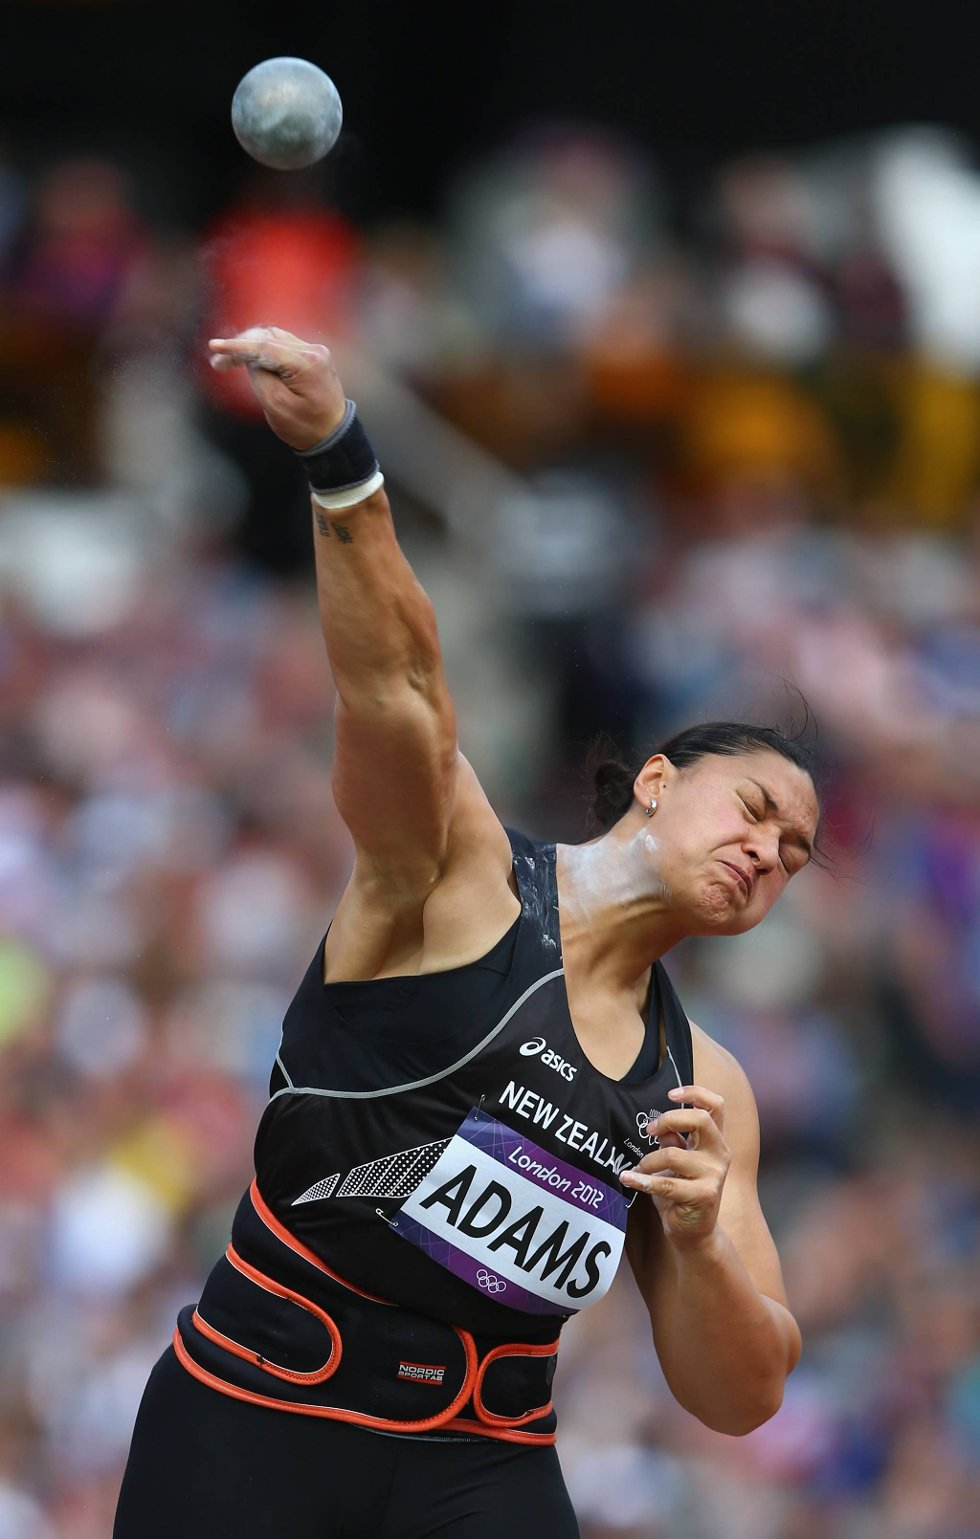 Valerie Adams fra New Zealand skal iallfall ha for innsatsen.  (Foto: Michael Steele, Getty Images/All Over Press/ANB)